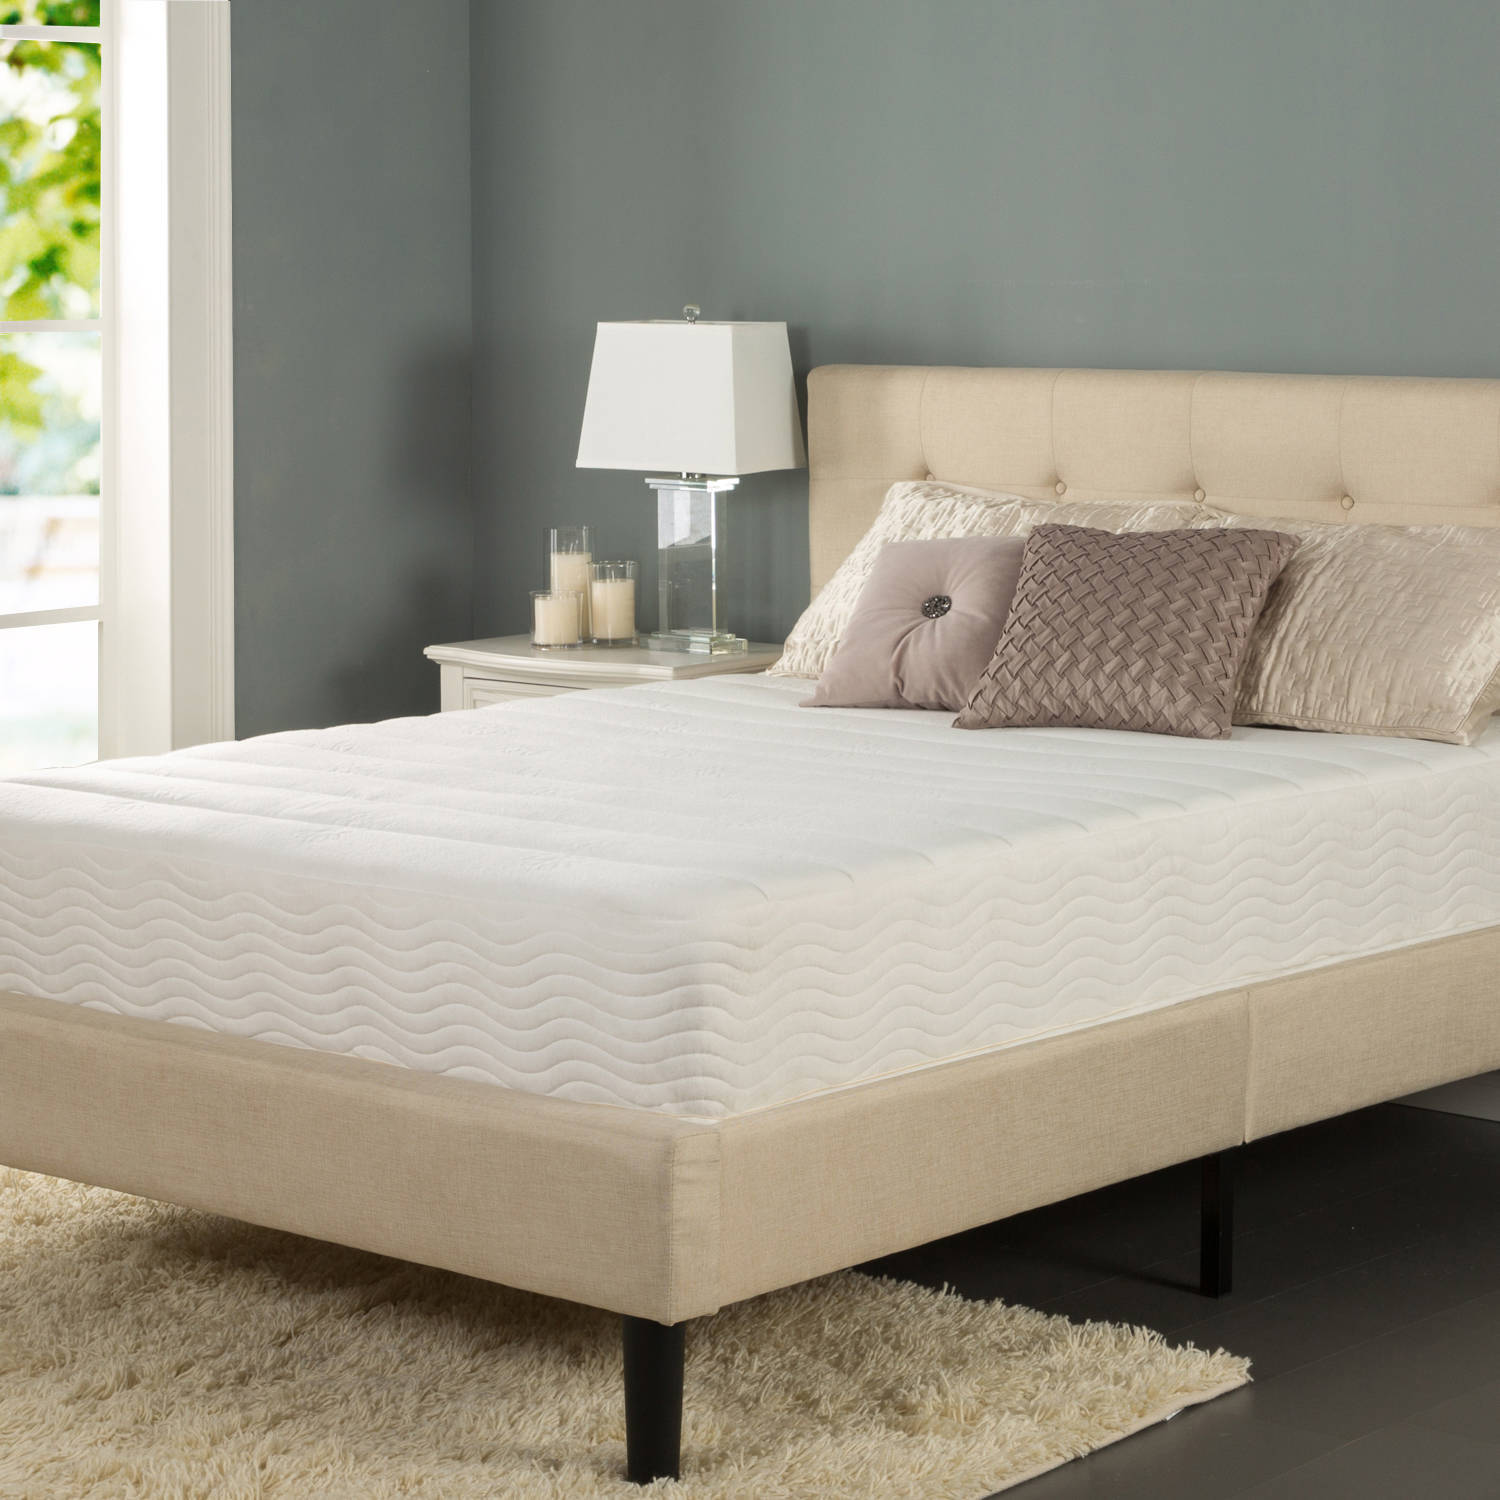 Spa Sensations 10'' Memory Foam and Spring Hybrid Mattress, Multiple Sizes